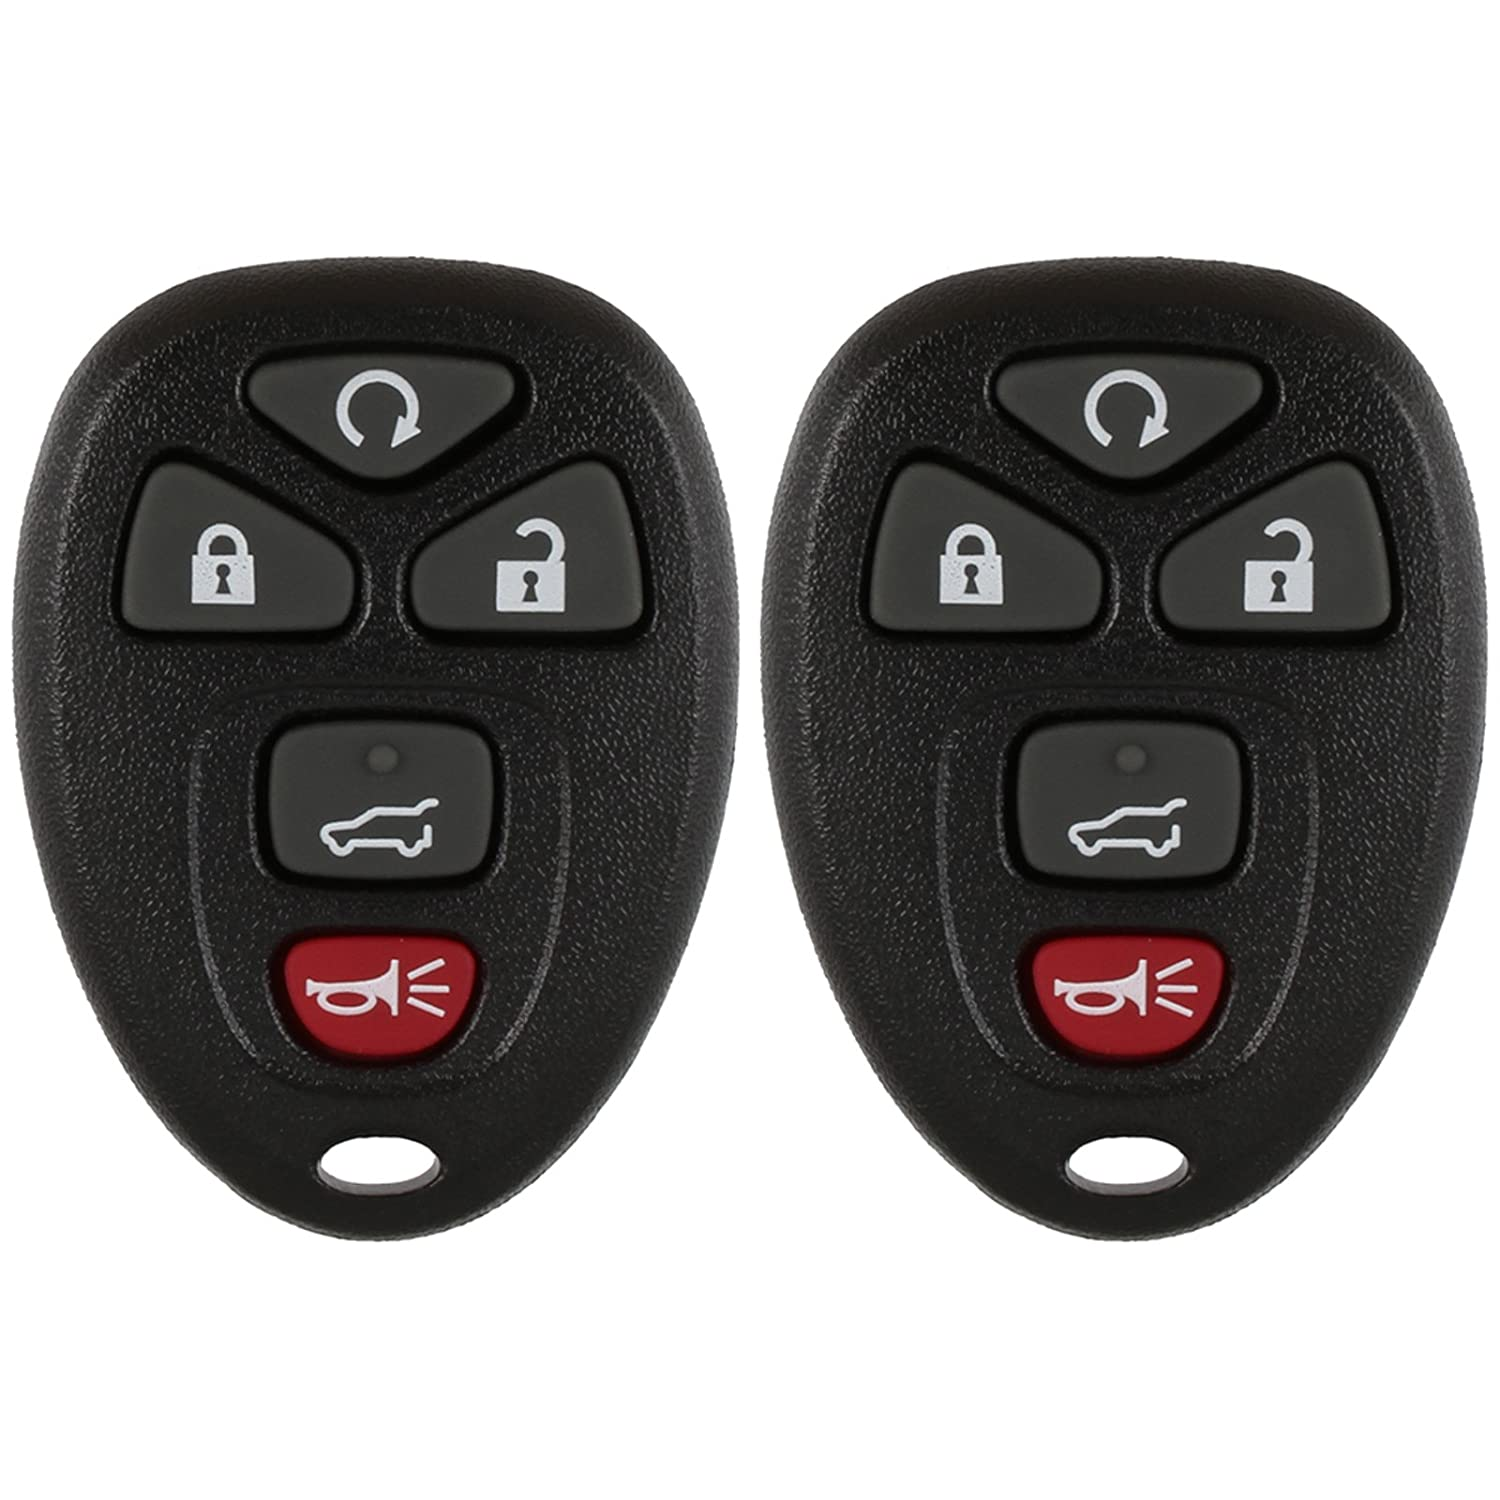 2 Pack Discount Keyless Replacement Key Fob Car Remote and Uncut Transponder Key Compatible with 15913415 25839476 ID 46